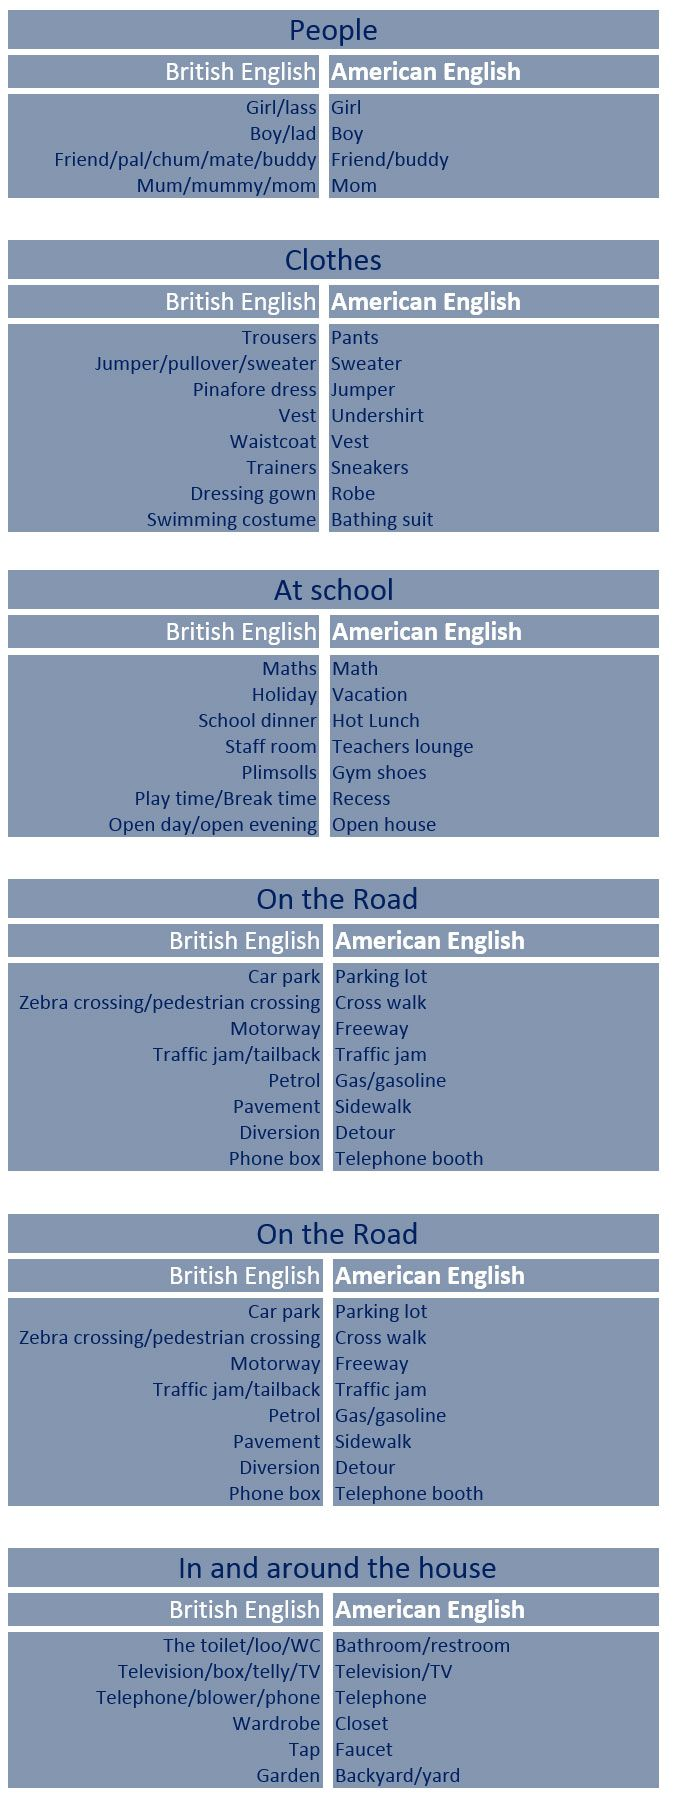 Differences Between American and British English - learn English ...